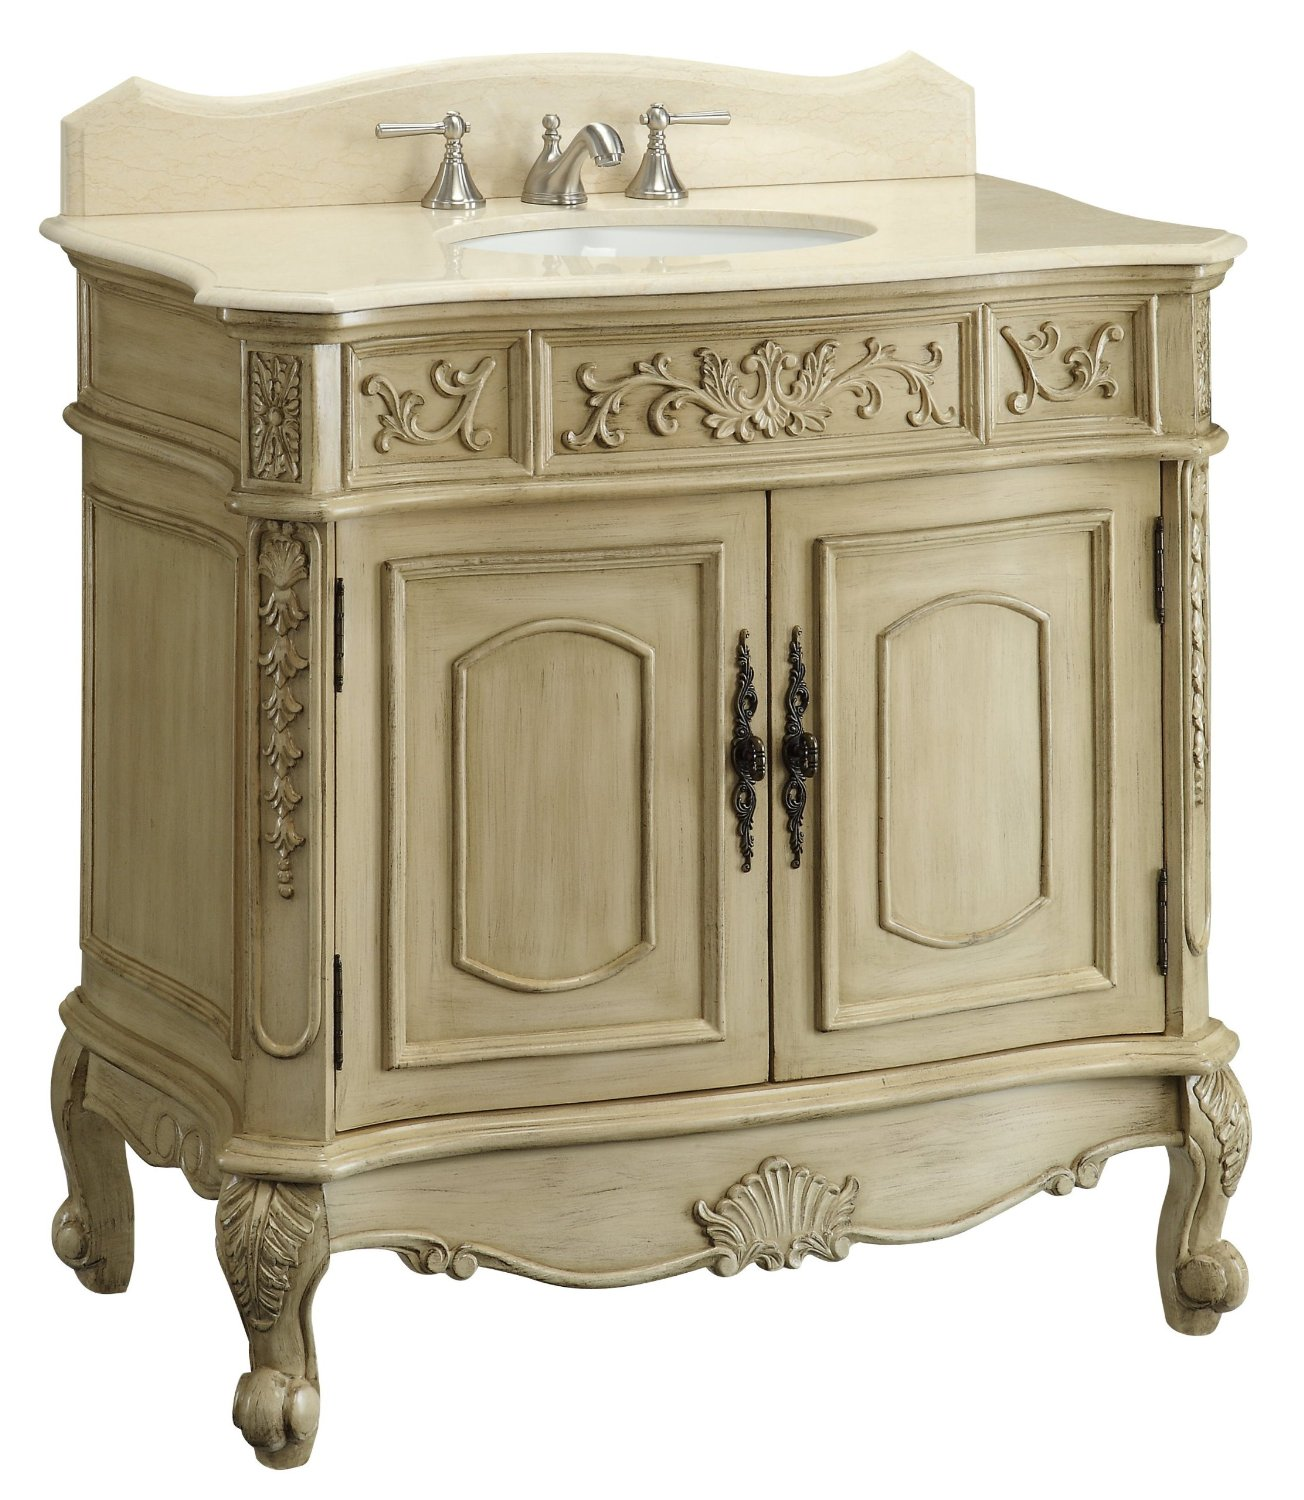 Adelina Inch Unique Antique Bathroom Vanity White Marble Counter Top - Antique bathroom vanity with vessel sink